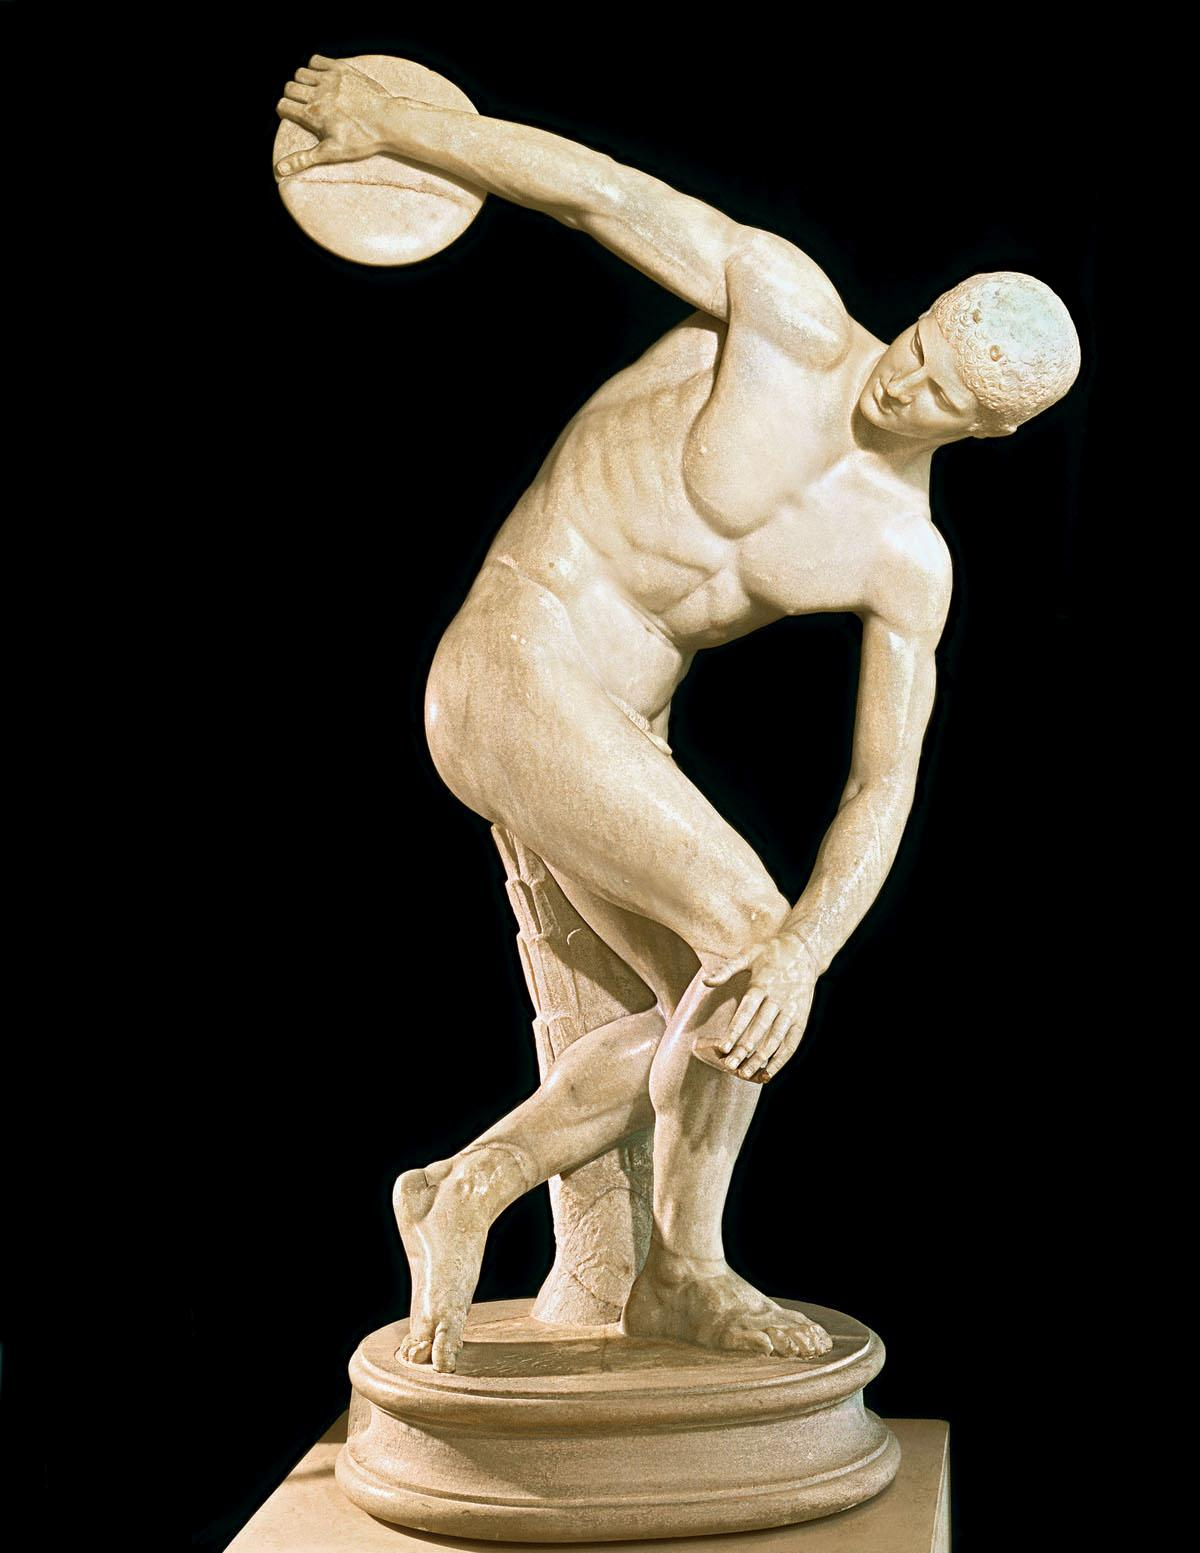 The Discobolus of Myron, a Greek sculpture that inspired 'Arthur'